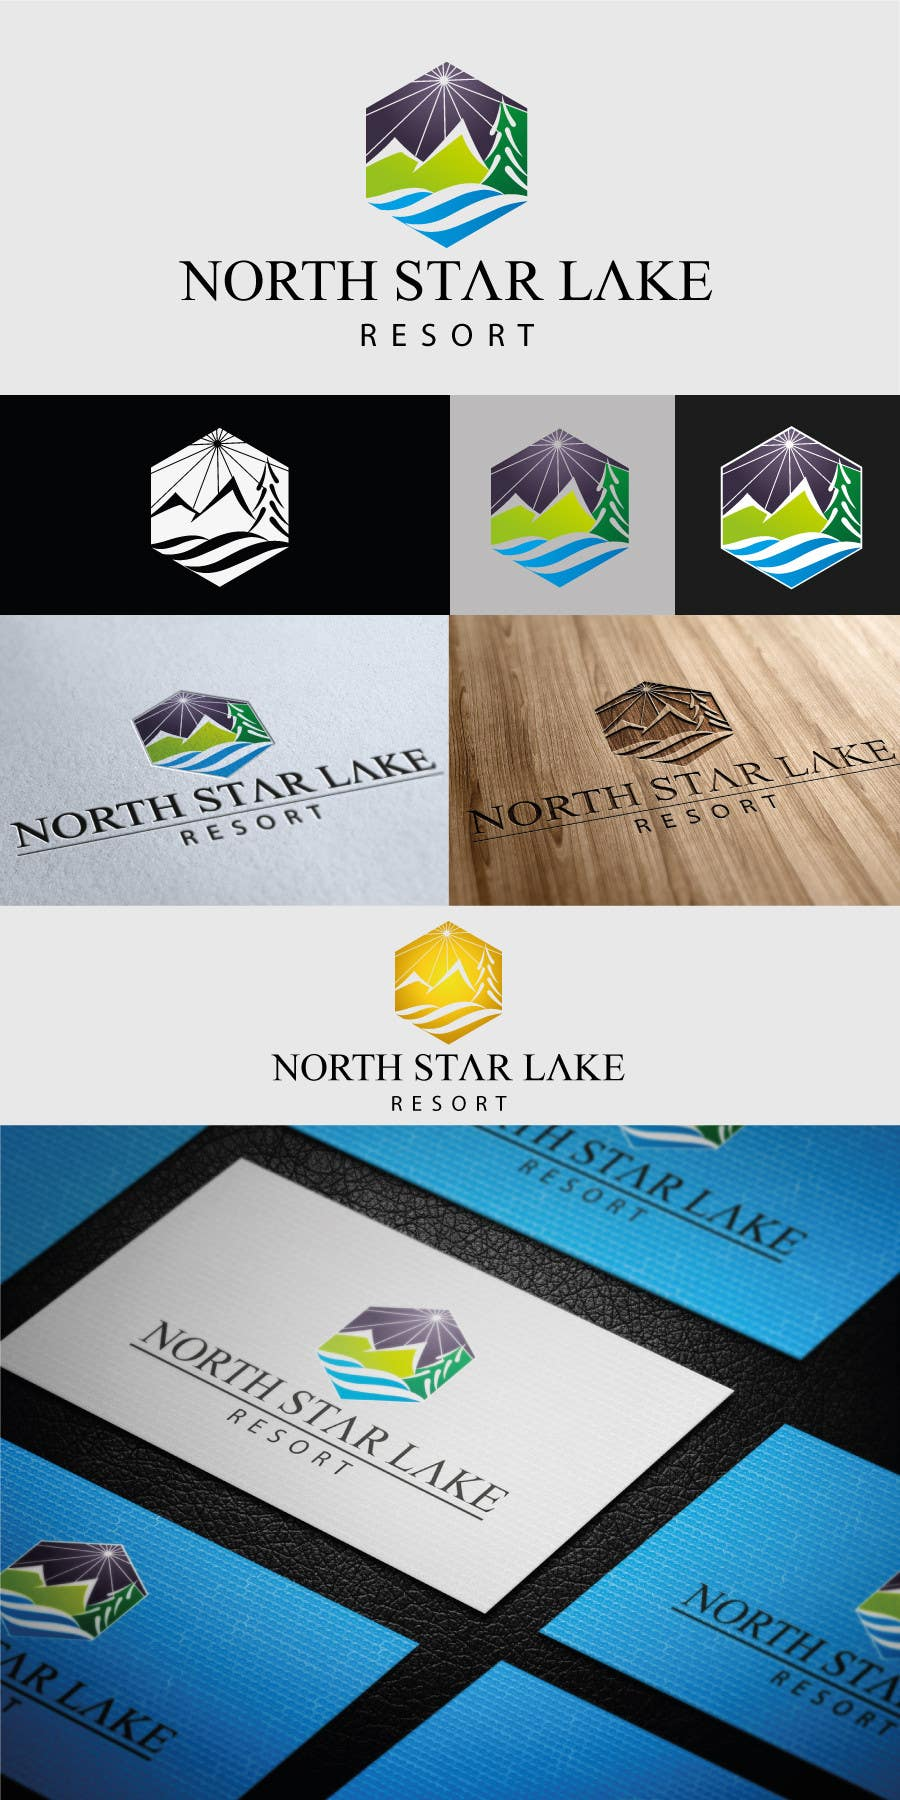 Konkurrenceindlæg #18 for Logo Design for A northwoods resort in Minnesota USA called North Star Lake Resort